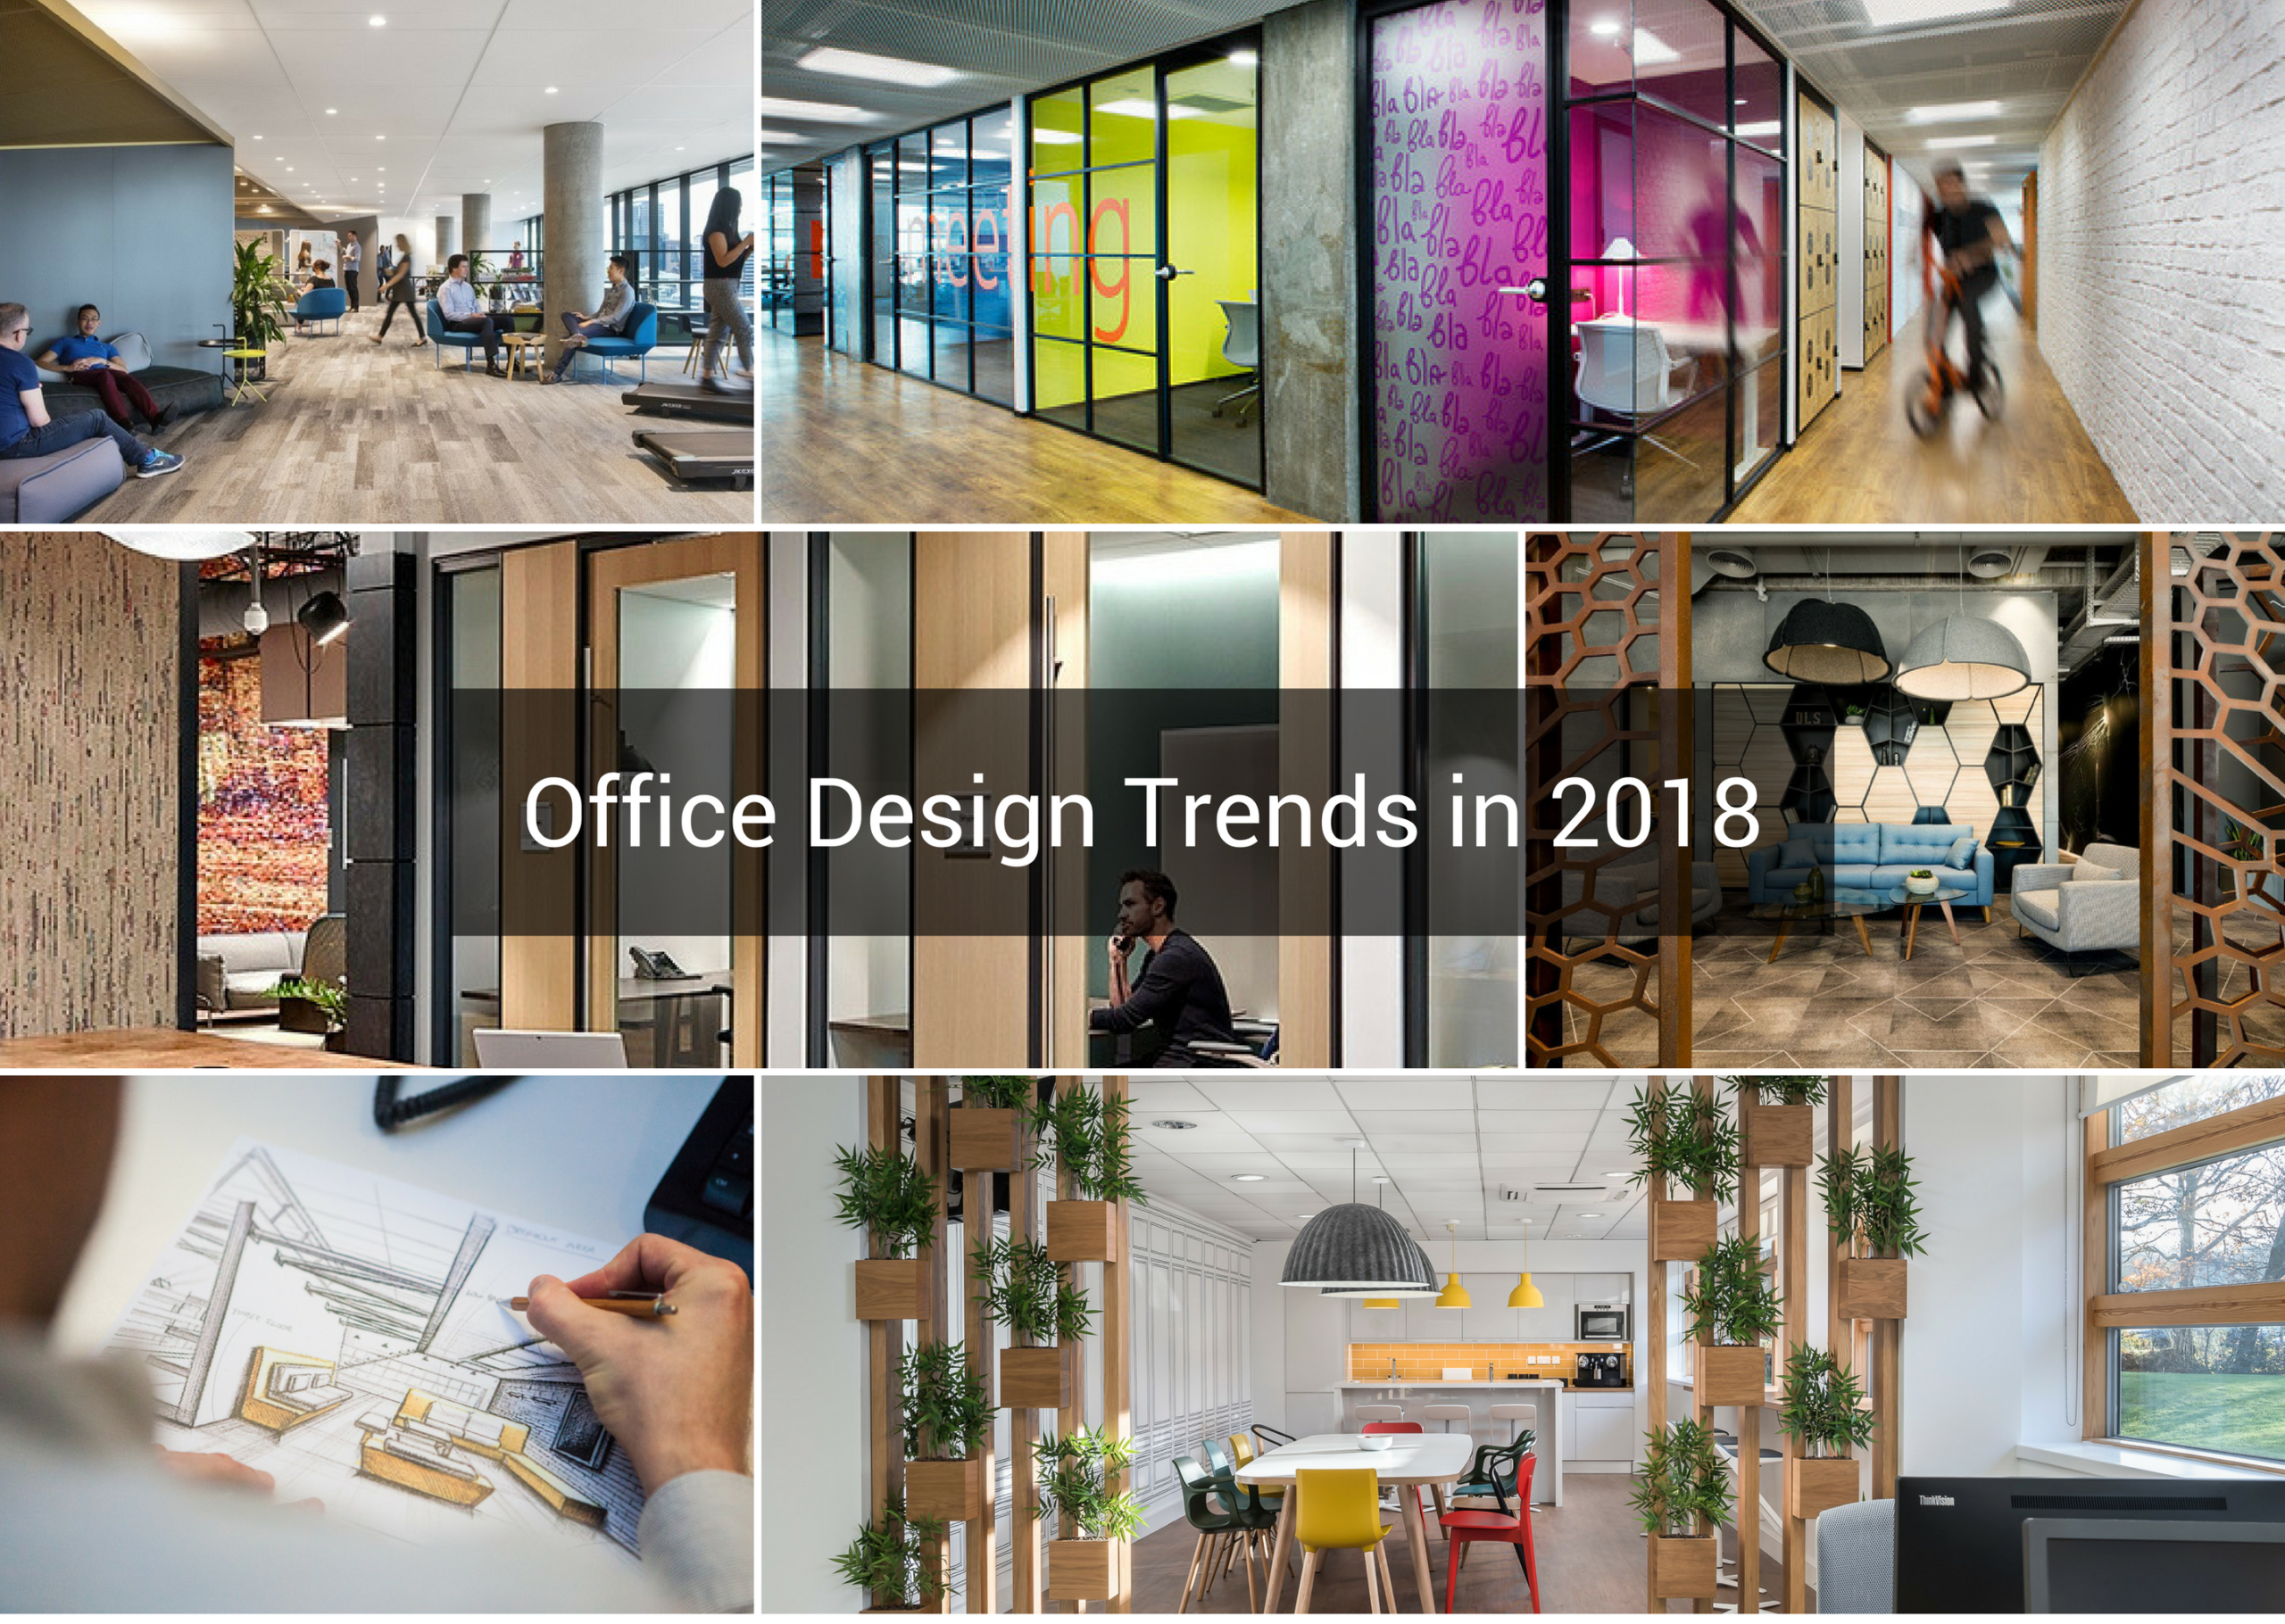 Office design trends to watch out for in 2018 k2 space Home fashion furniture trends